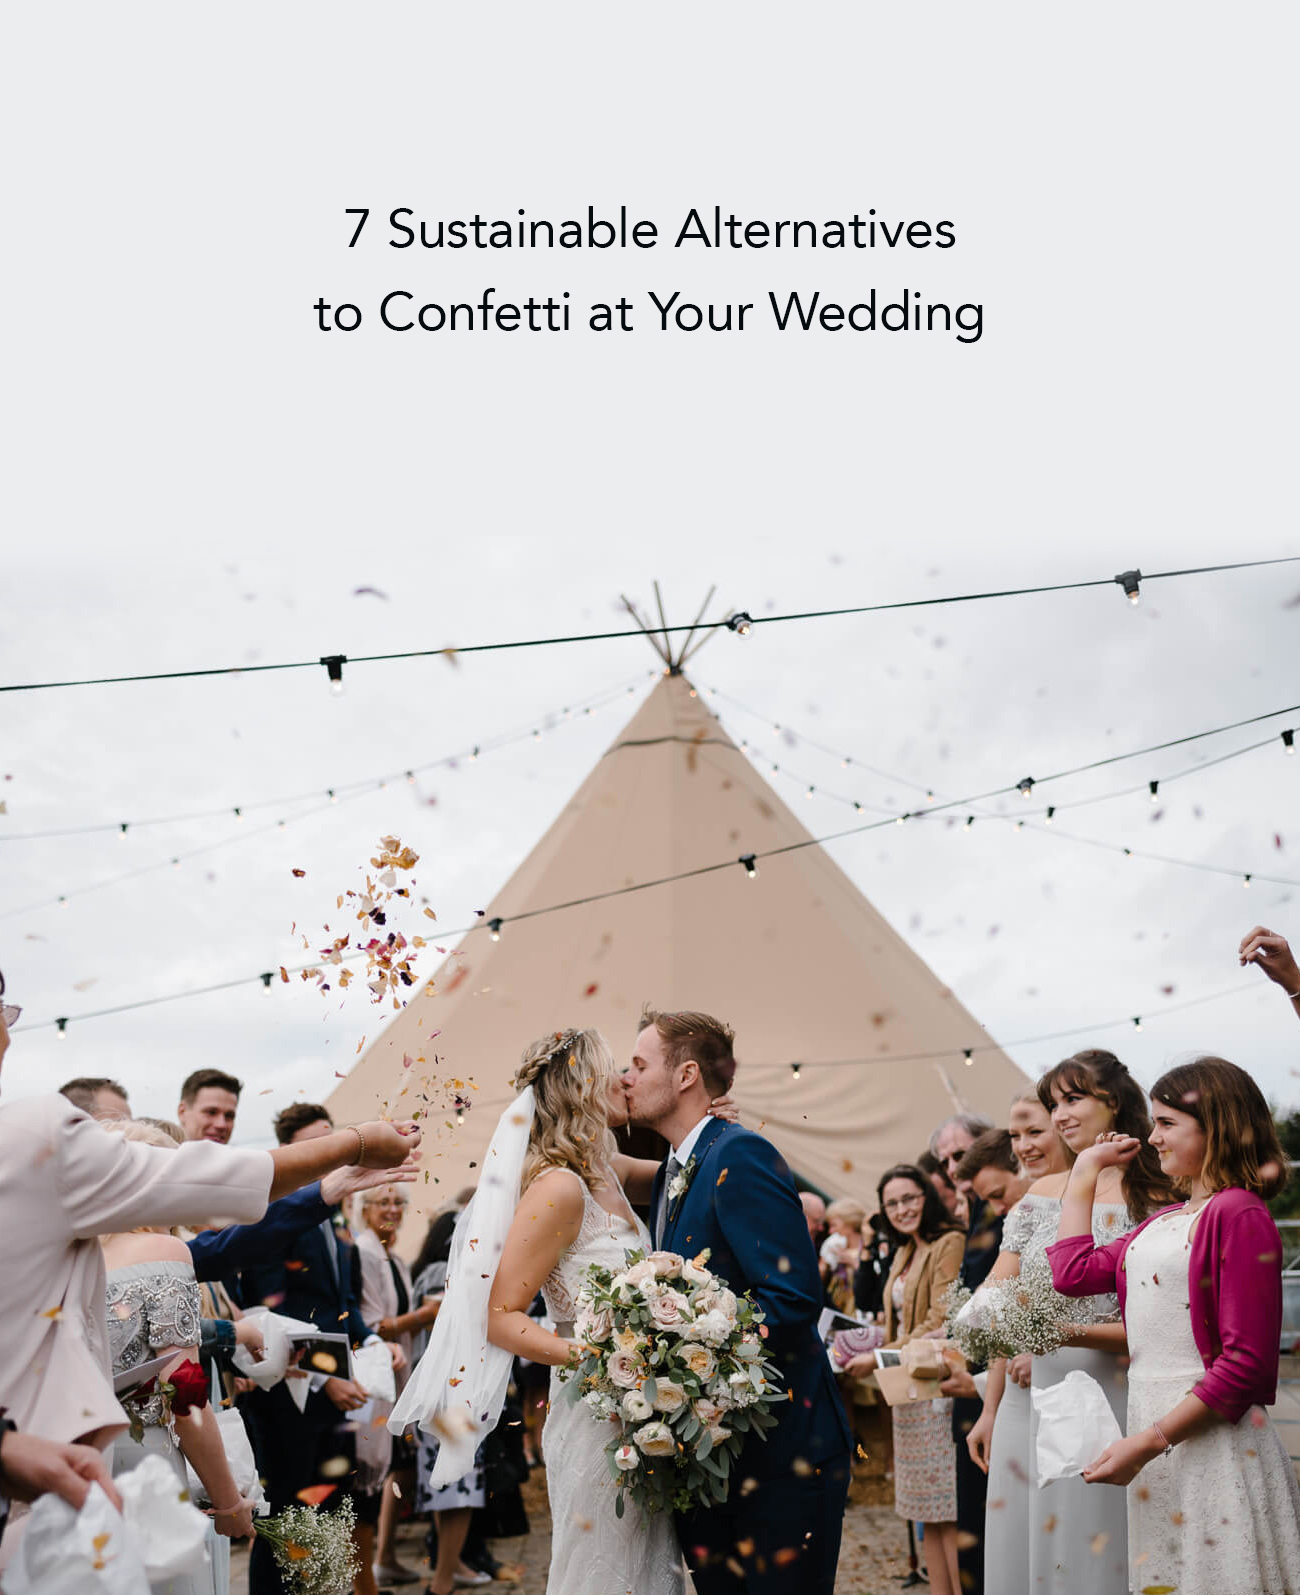 7 Sustainable Alternatives to Confetti at your Wedding